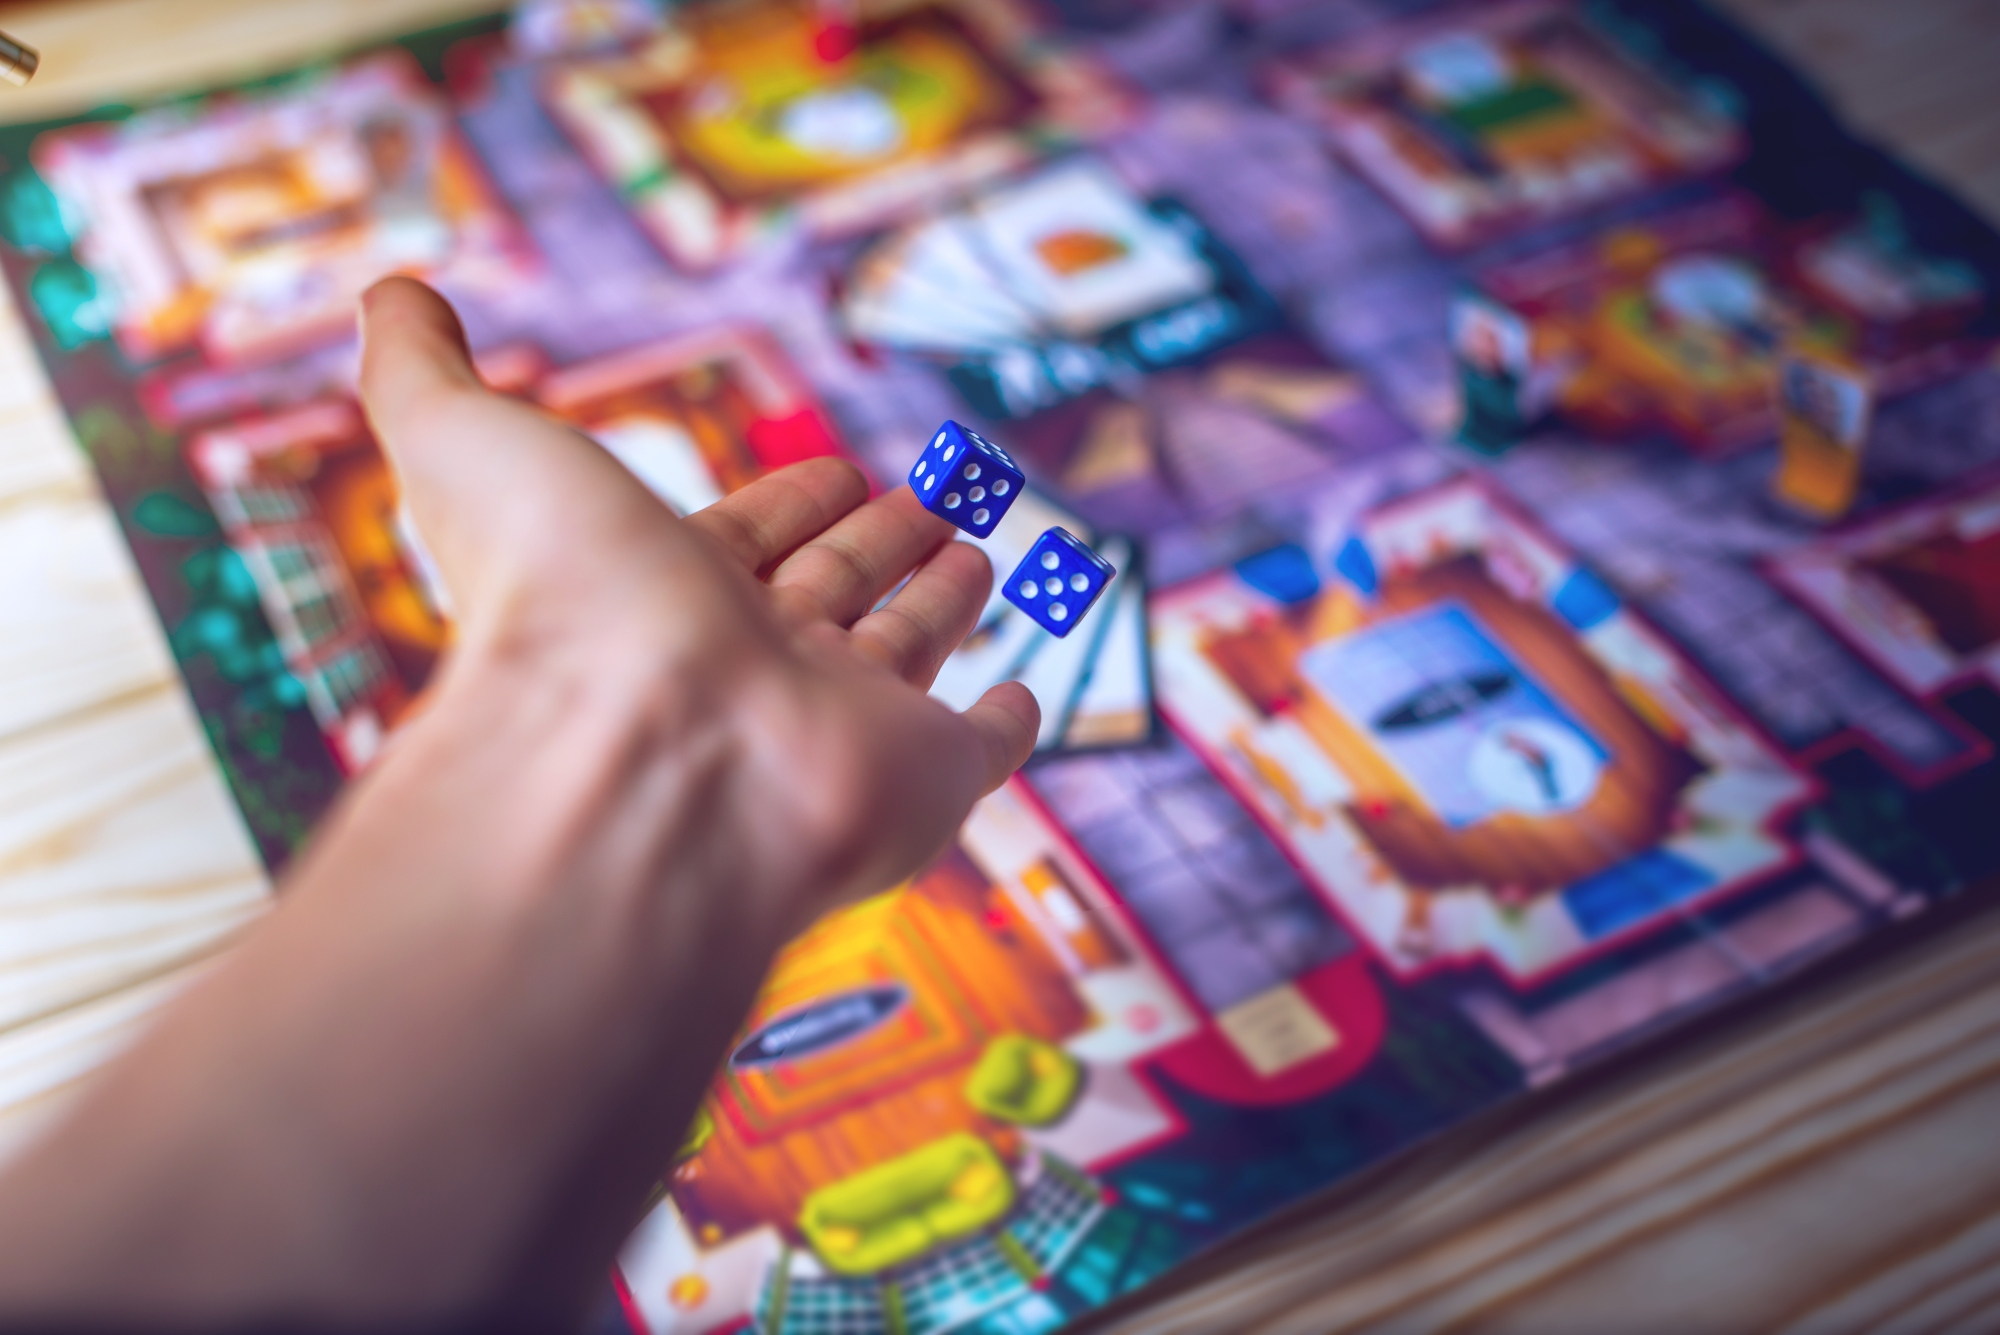 hand-throws-dice-board-game_1.jpg